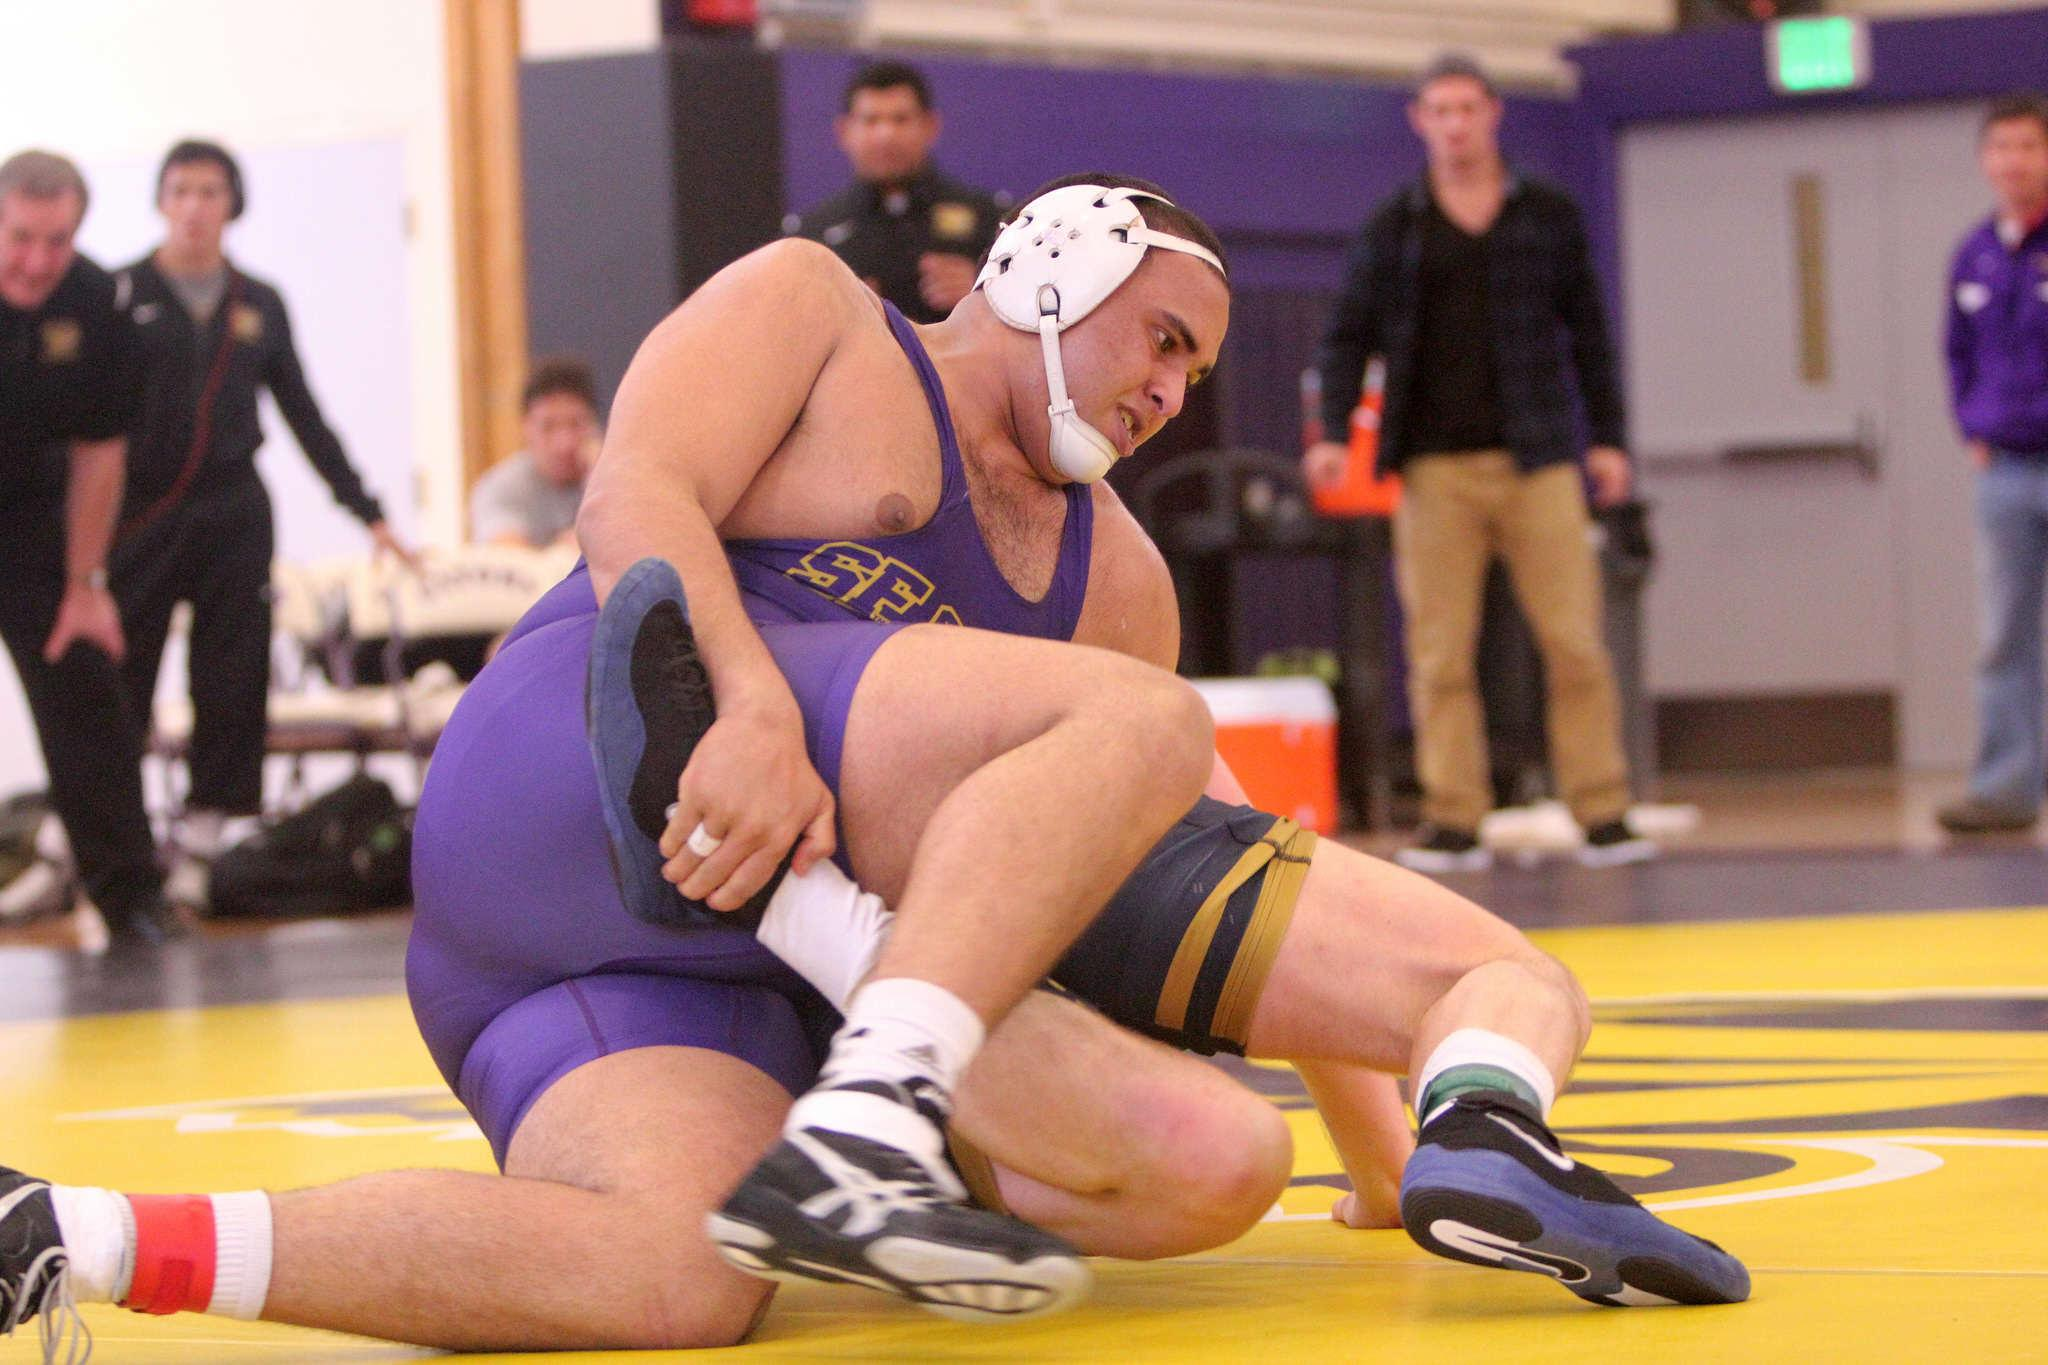 San Francisco State's Sam Alnassiri puts a leg hold on Cal Baptist's David Dill's at SF State's gym during the match Friday, Jan. 30. (Drake Newkirk / Xpress)